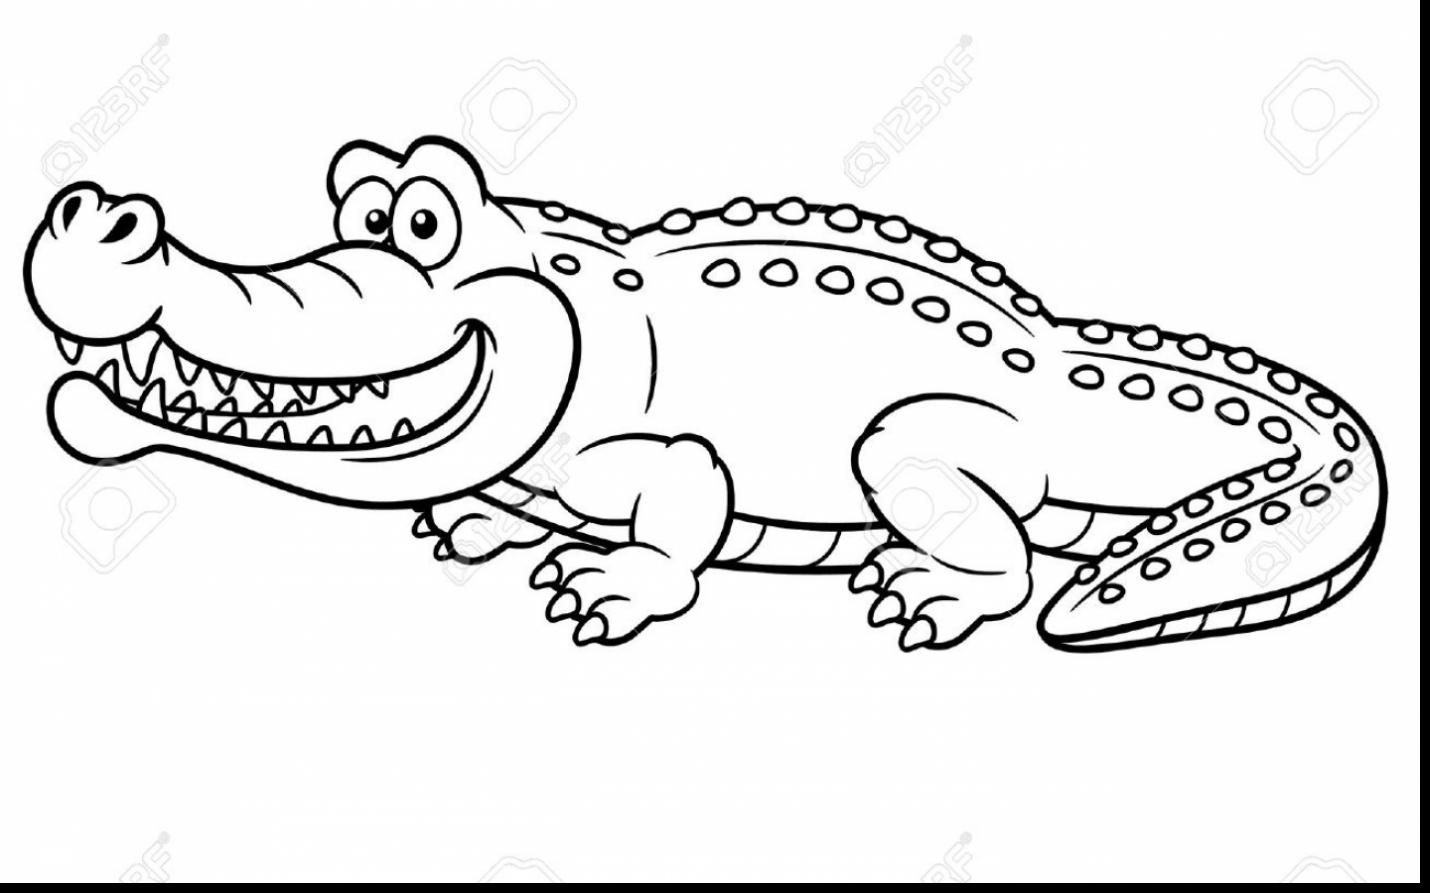 Surprising Alligator Coloring Pages With Alligator Coloring Page Animal Coloring Pages Turtle Coloring Pages Coloring Books